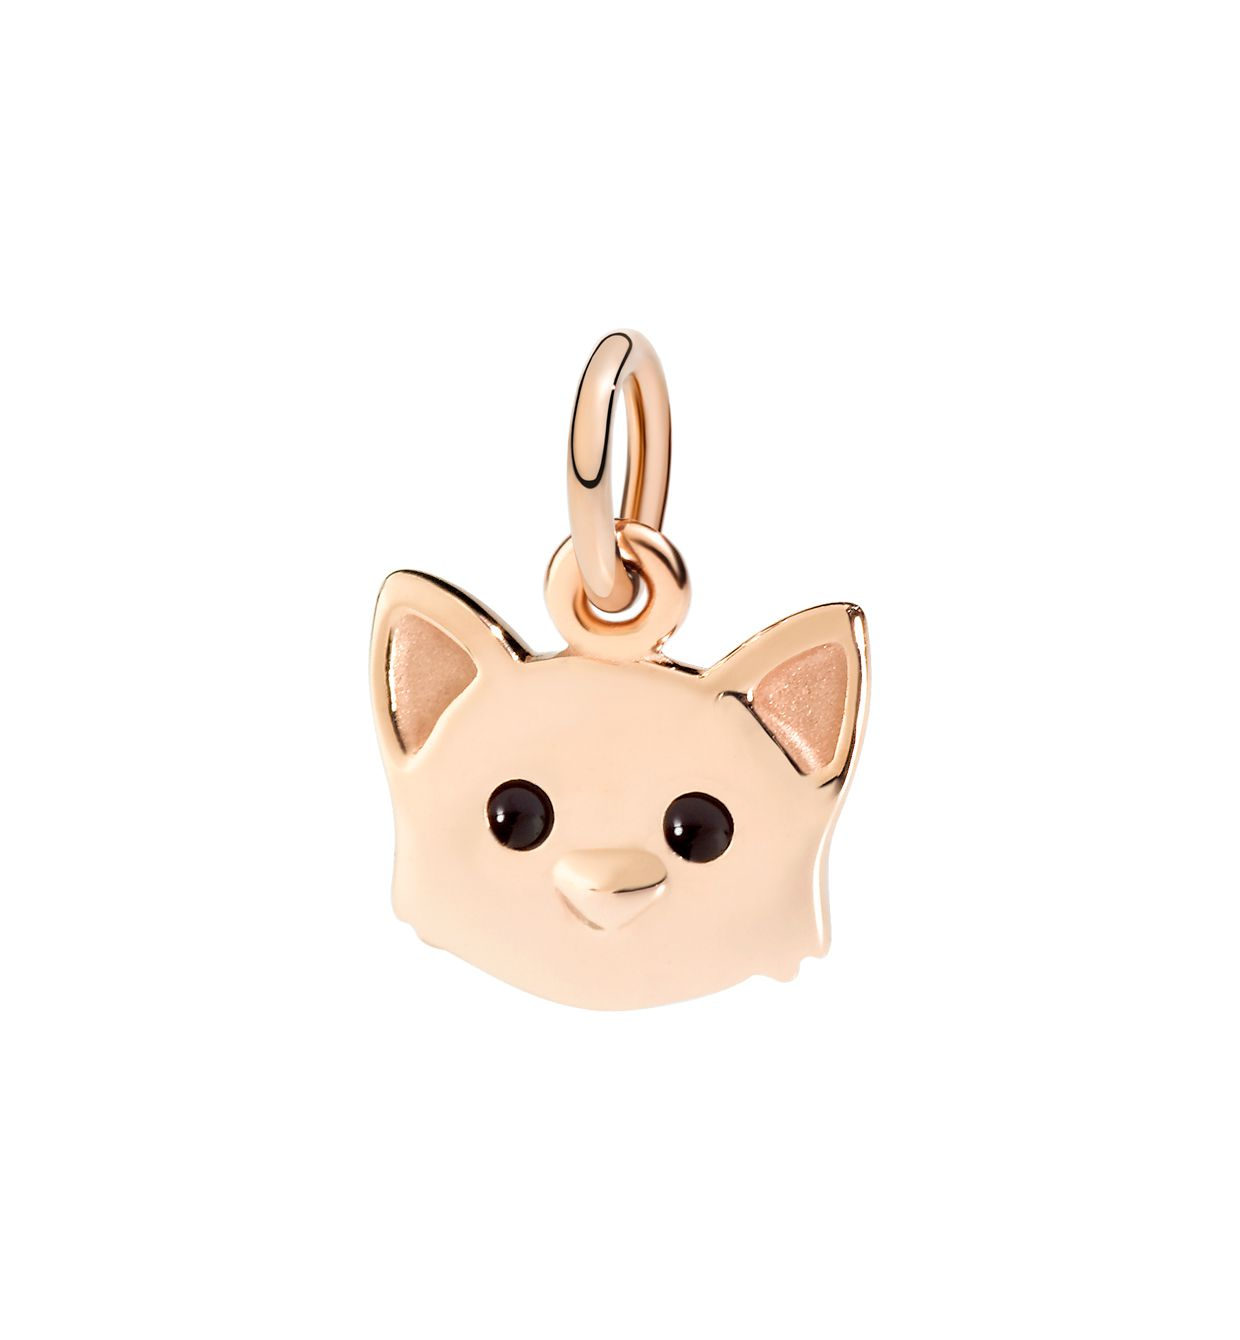 DoDo Cat in 9kt Rose Gold with Enamel - Orsini Jewellers NZ